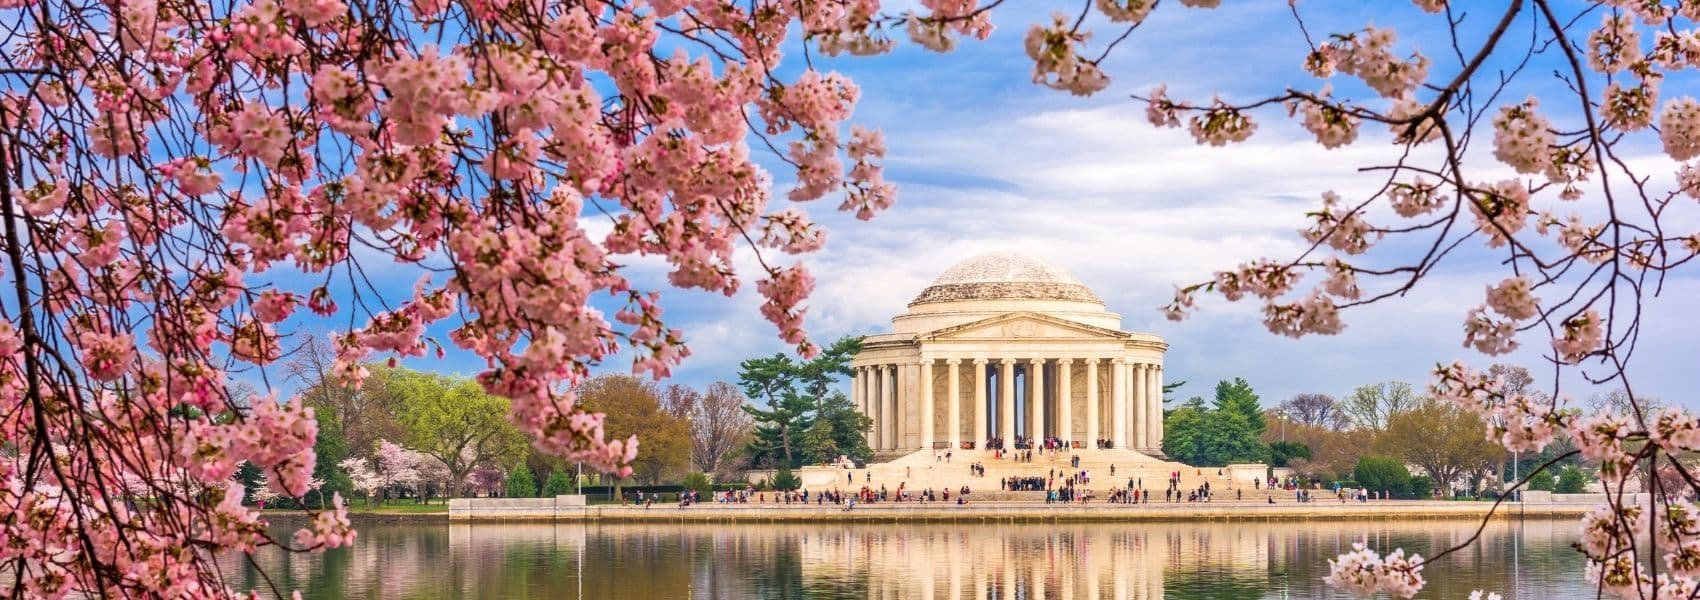 Photo of Jefferson Memorial in Washington, DC from across the Tidal Basin with blossoming cherry blossom trees in the foreground.